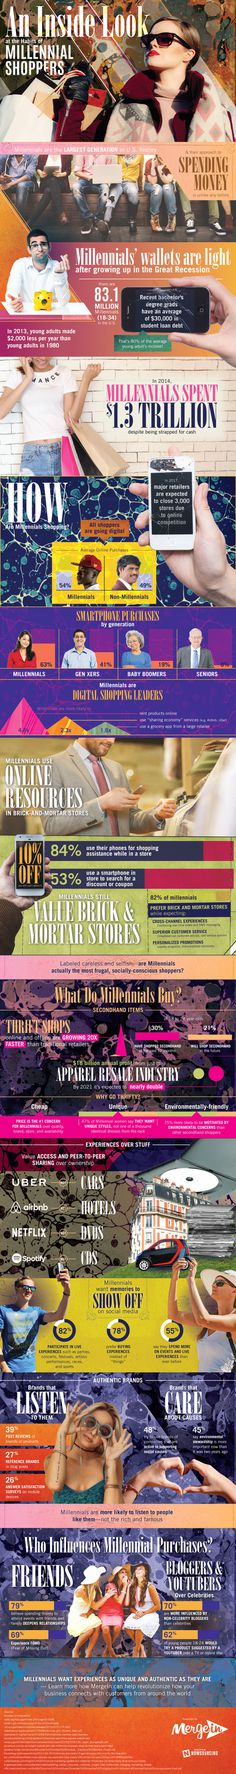 Millennial shopping habits [infographic] Millennials are shaking up retail. Here's how!